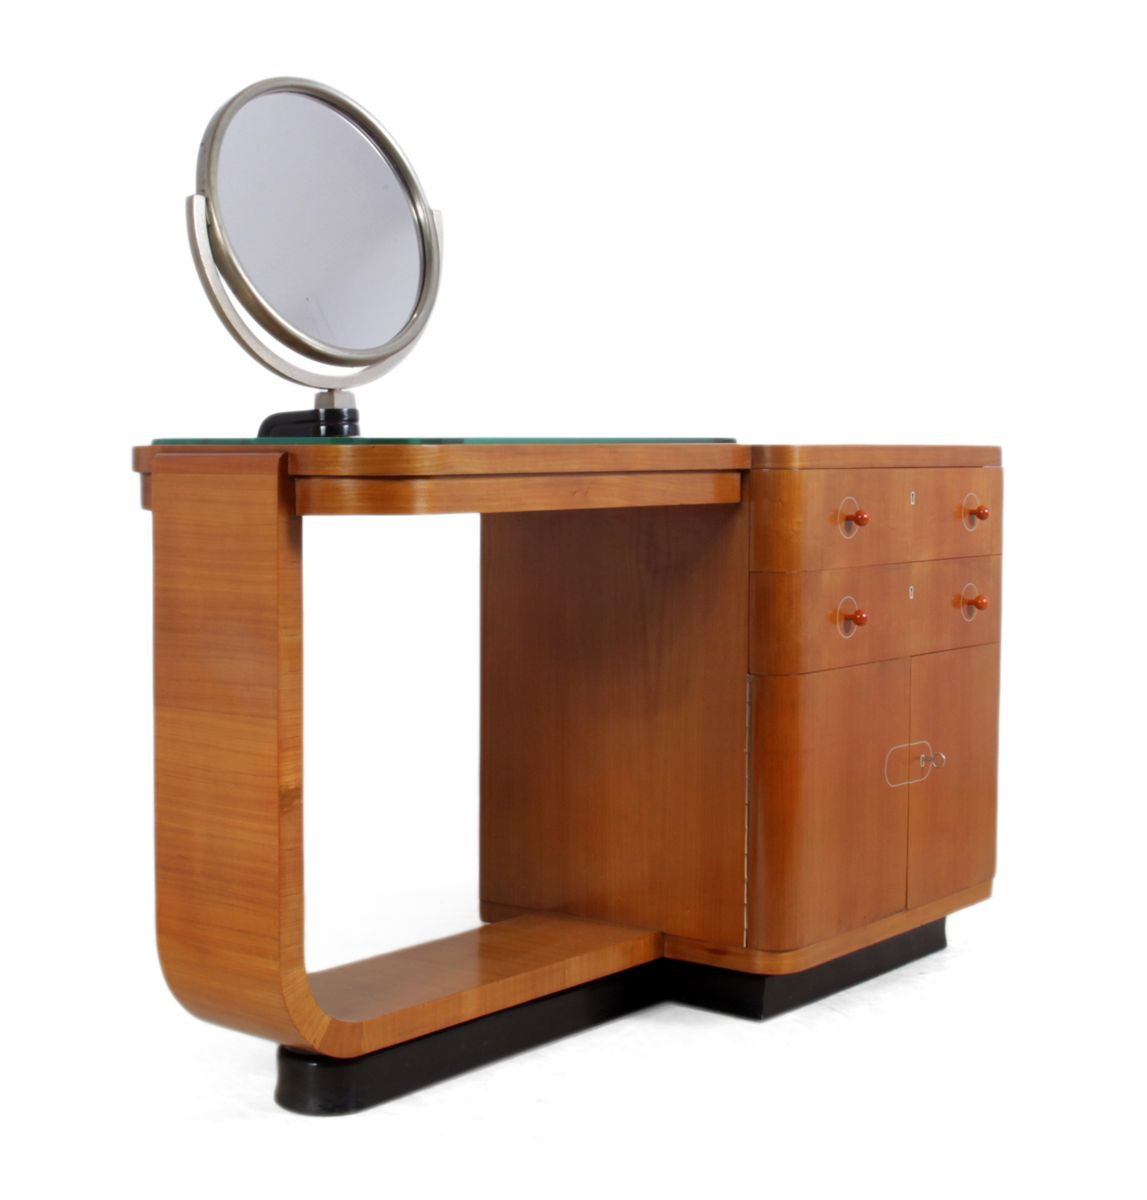 Art deco walnut dressing table 1930s for sale at pamono for Meuble art deco 1930